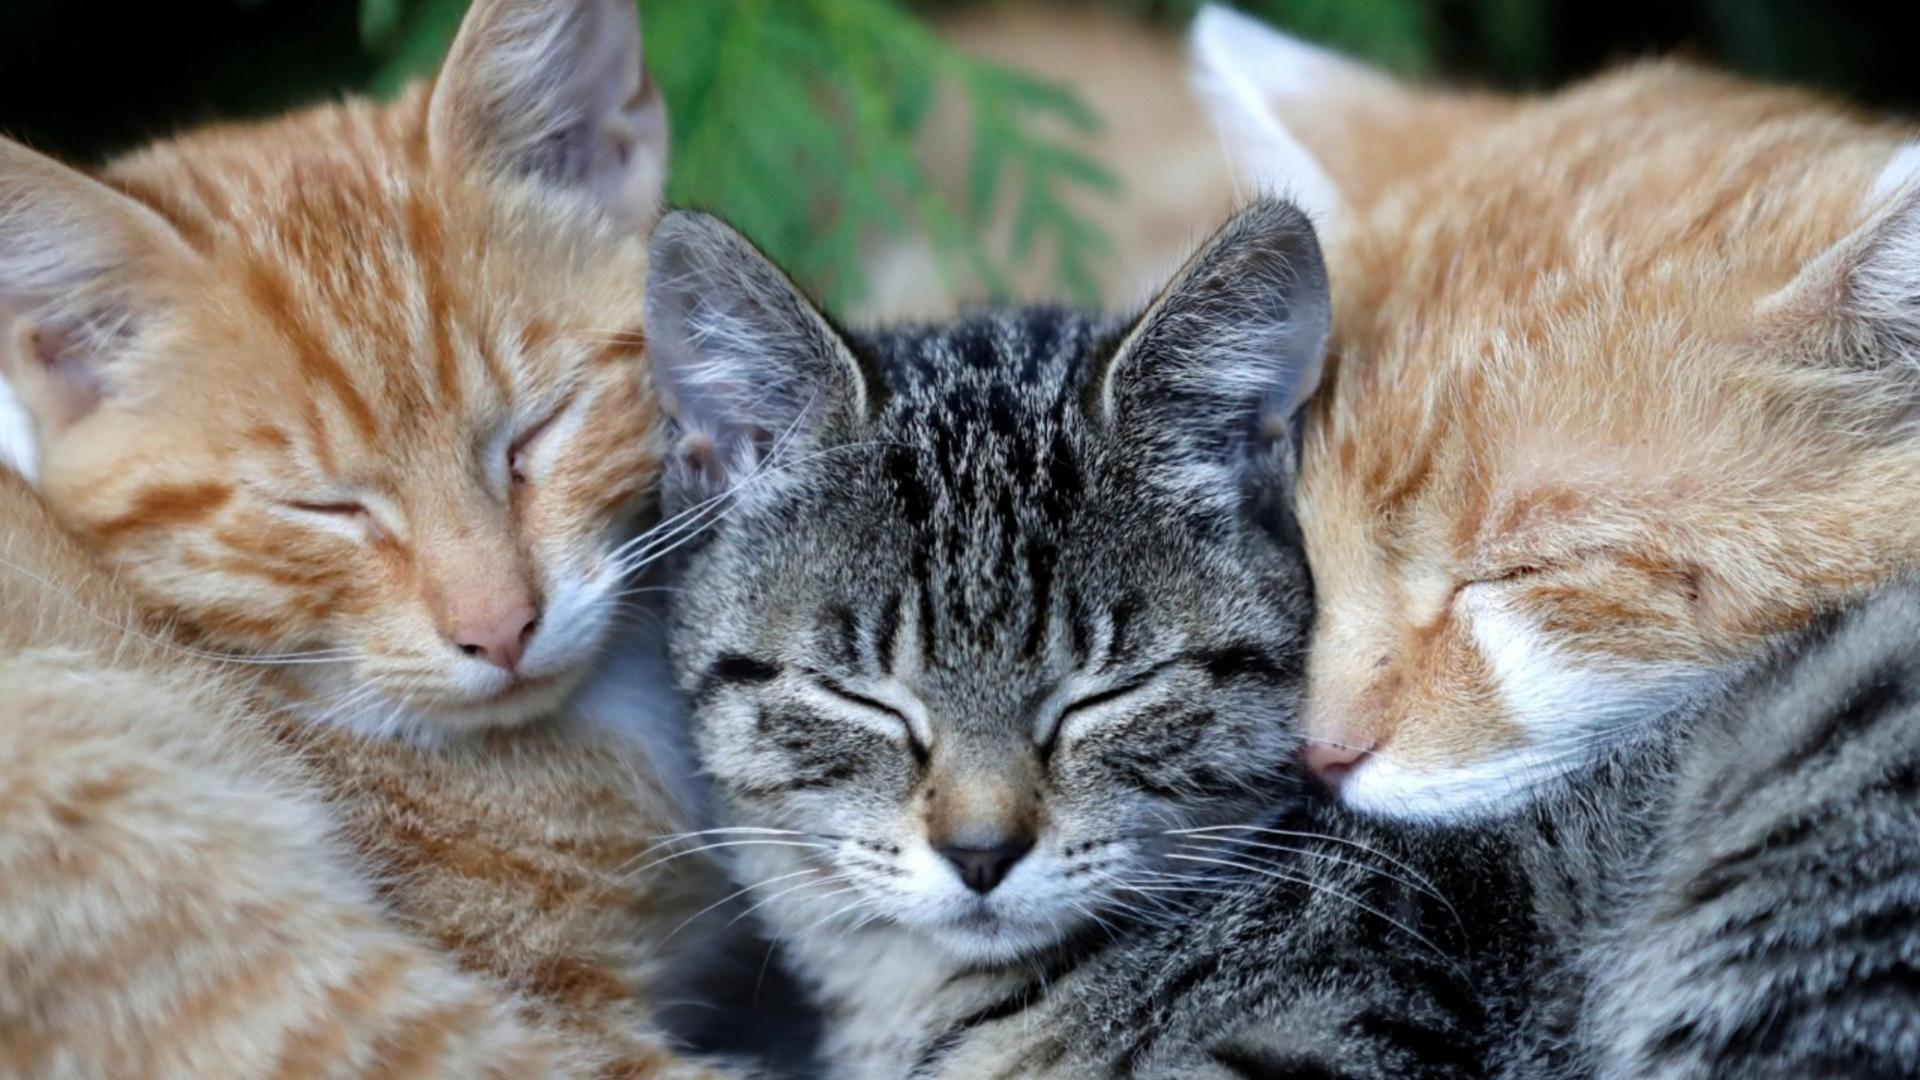 Don't Buy A Kitten Or Puppy – And 8 Other Ways To Help Animals This Winter